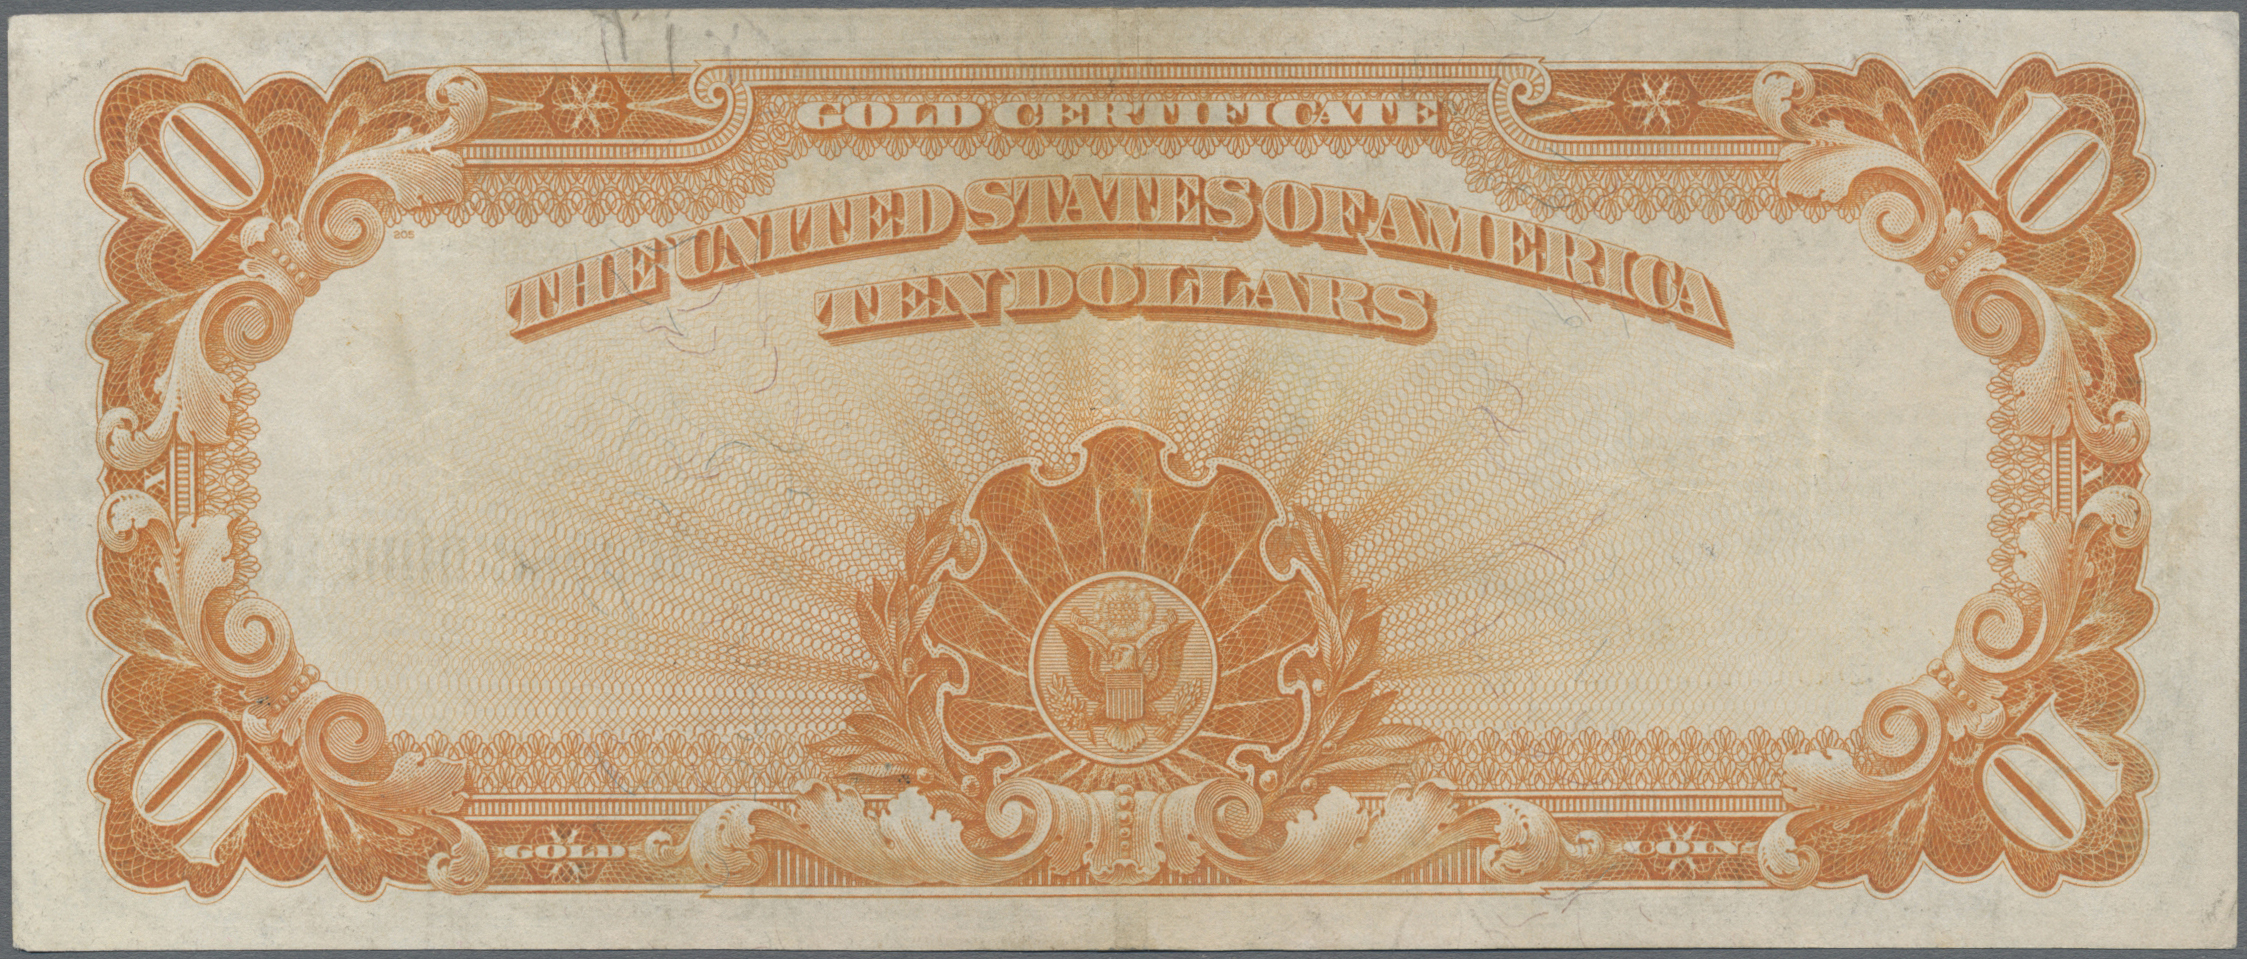 Lot 00903 - United States of America | Banknoten  -  Auktionshaus Christoph Gärtner GmbH & Co. KG Sale #48 The Banknotes